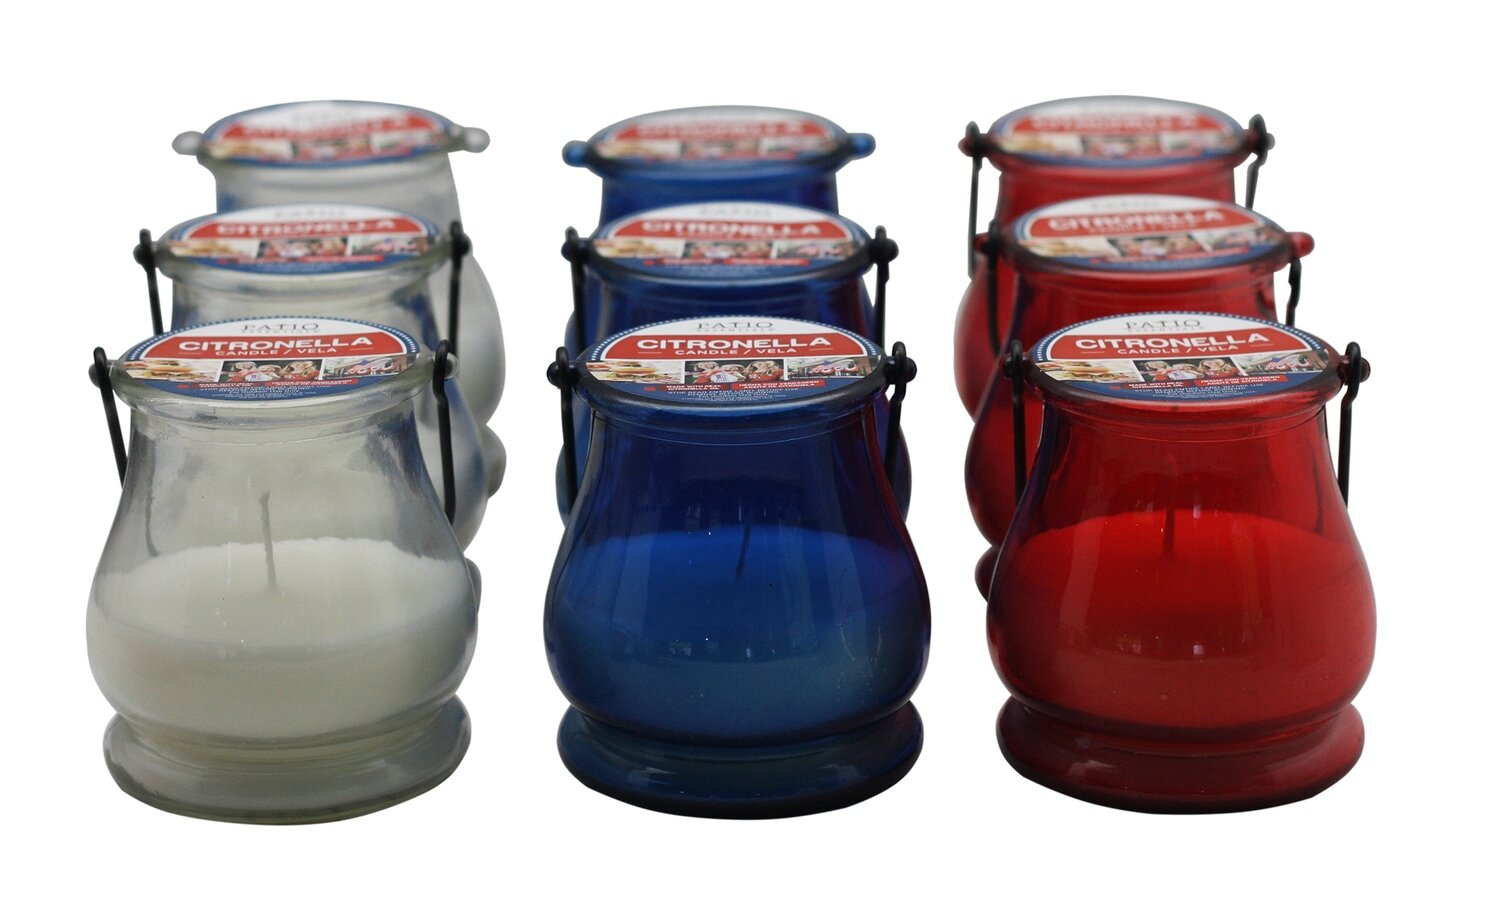 5 OZ Citronella Glass Candle